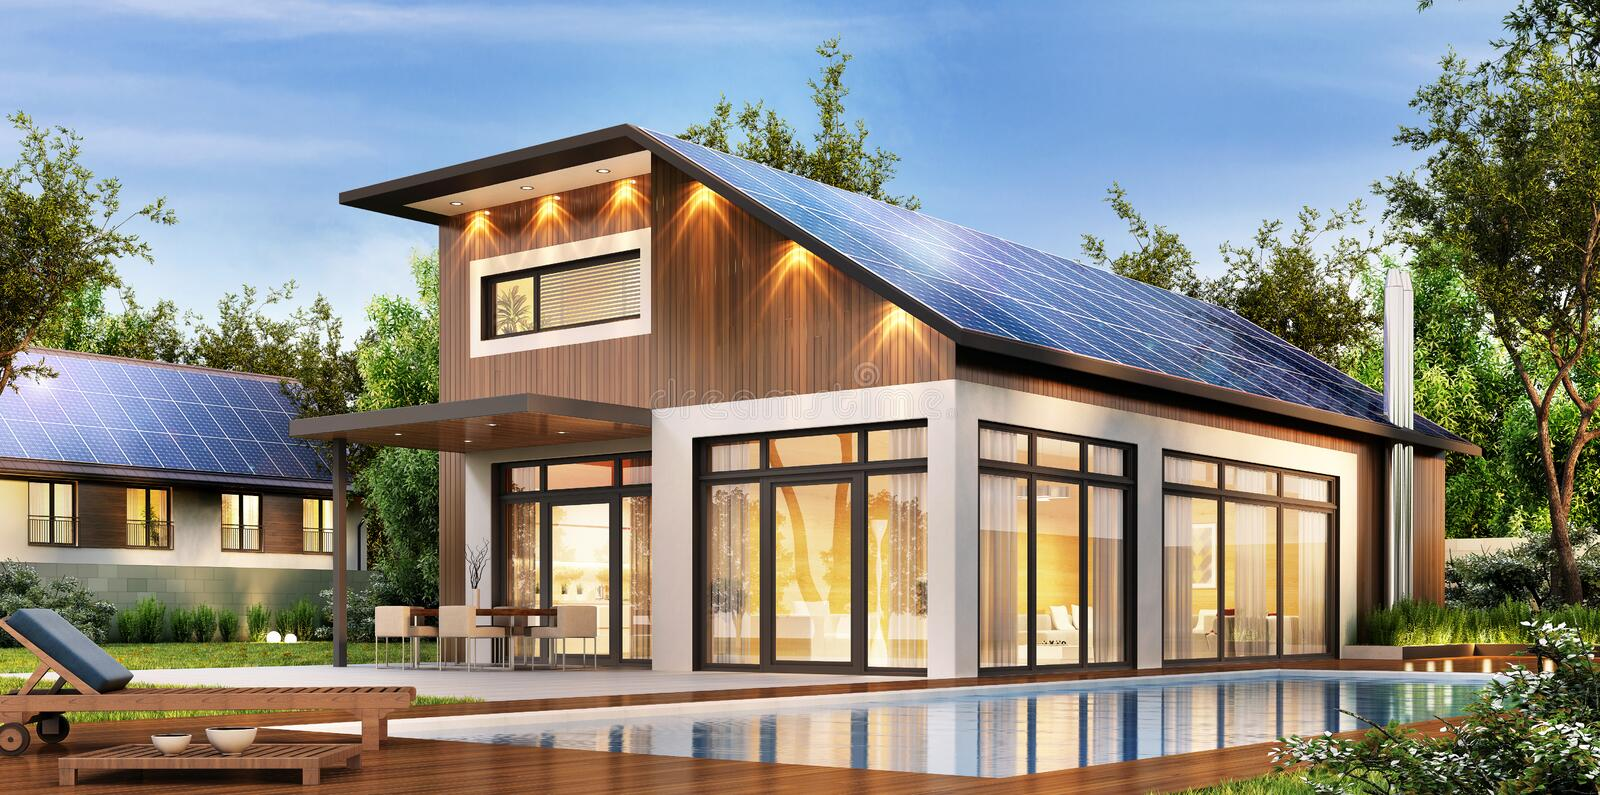 Modern house with solar panels on the roof vector illustration